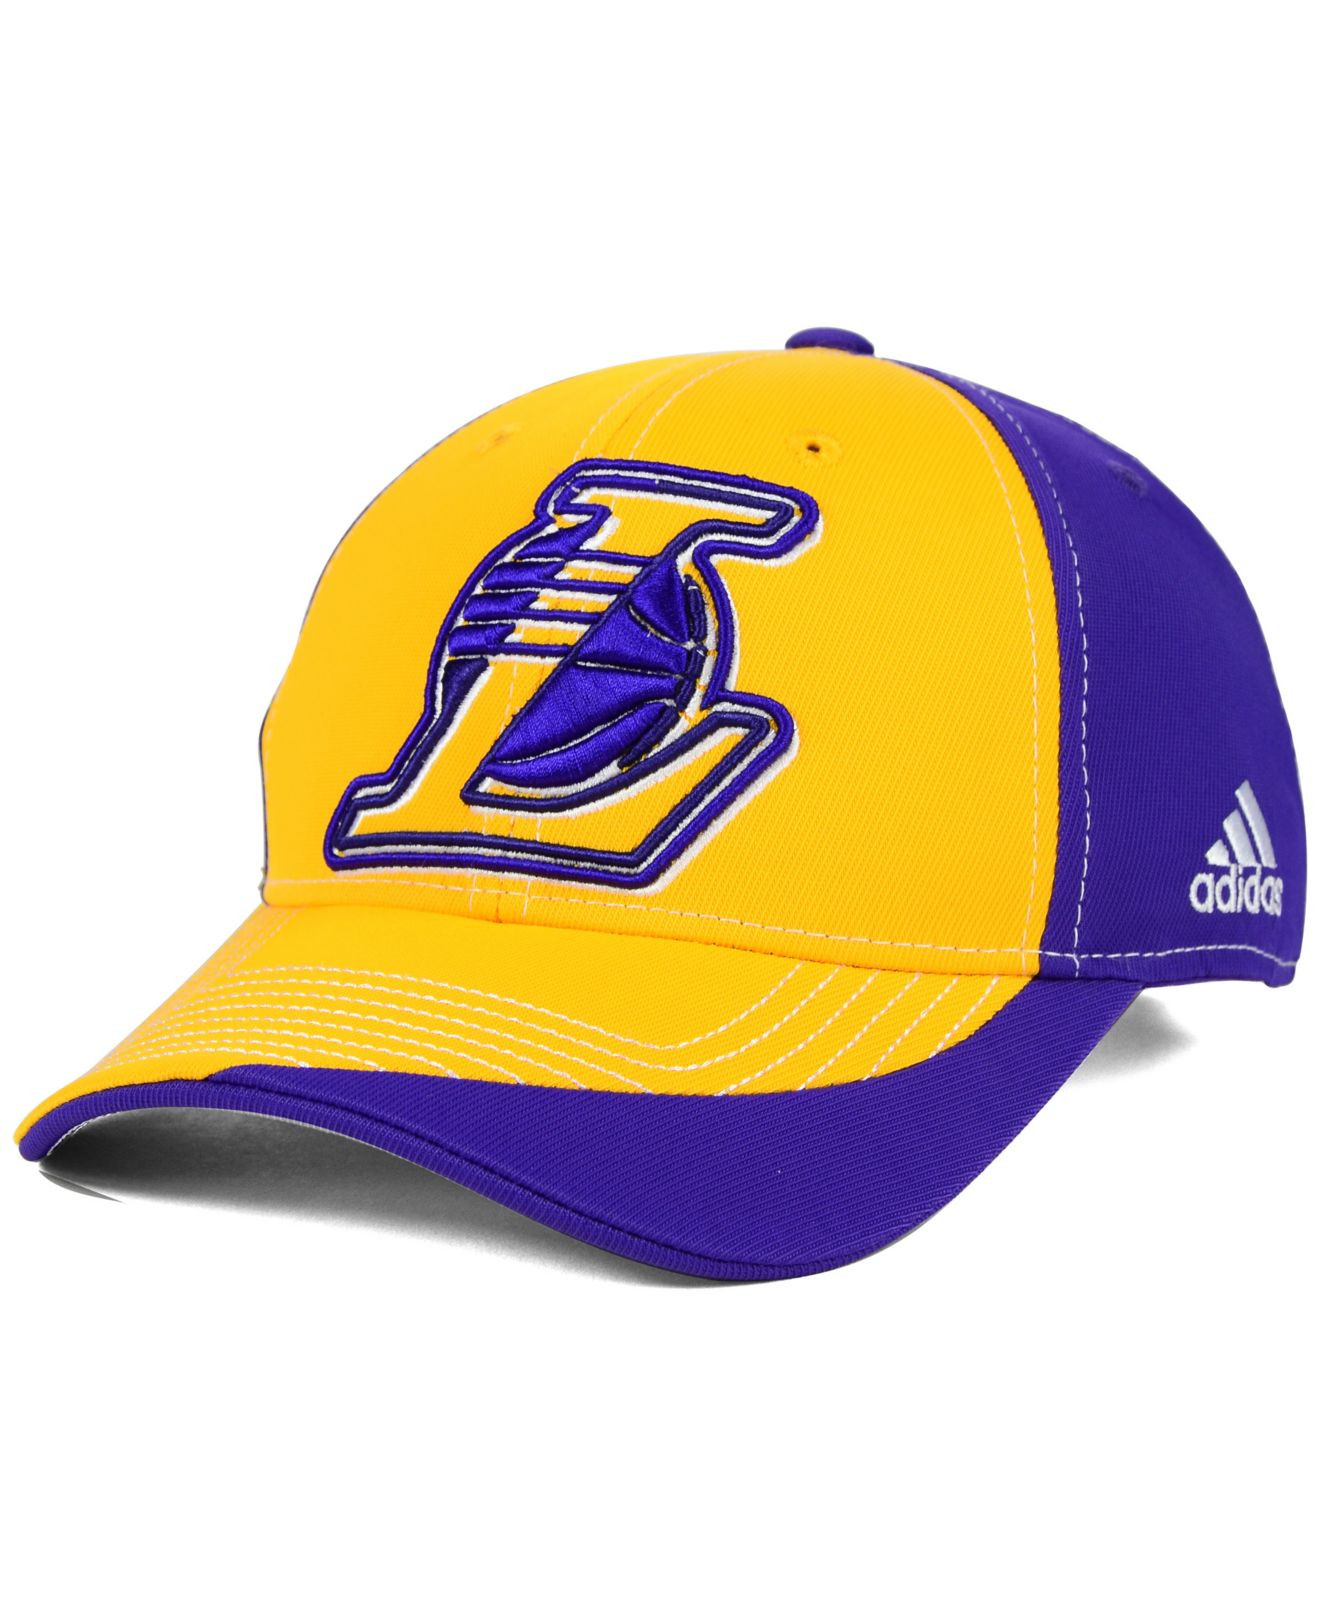 Lyst - Adidas Originals Los Angeles Lakers Dribble Series Adjustable ... a3ded897362f